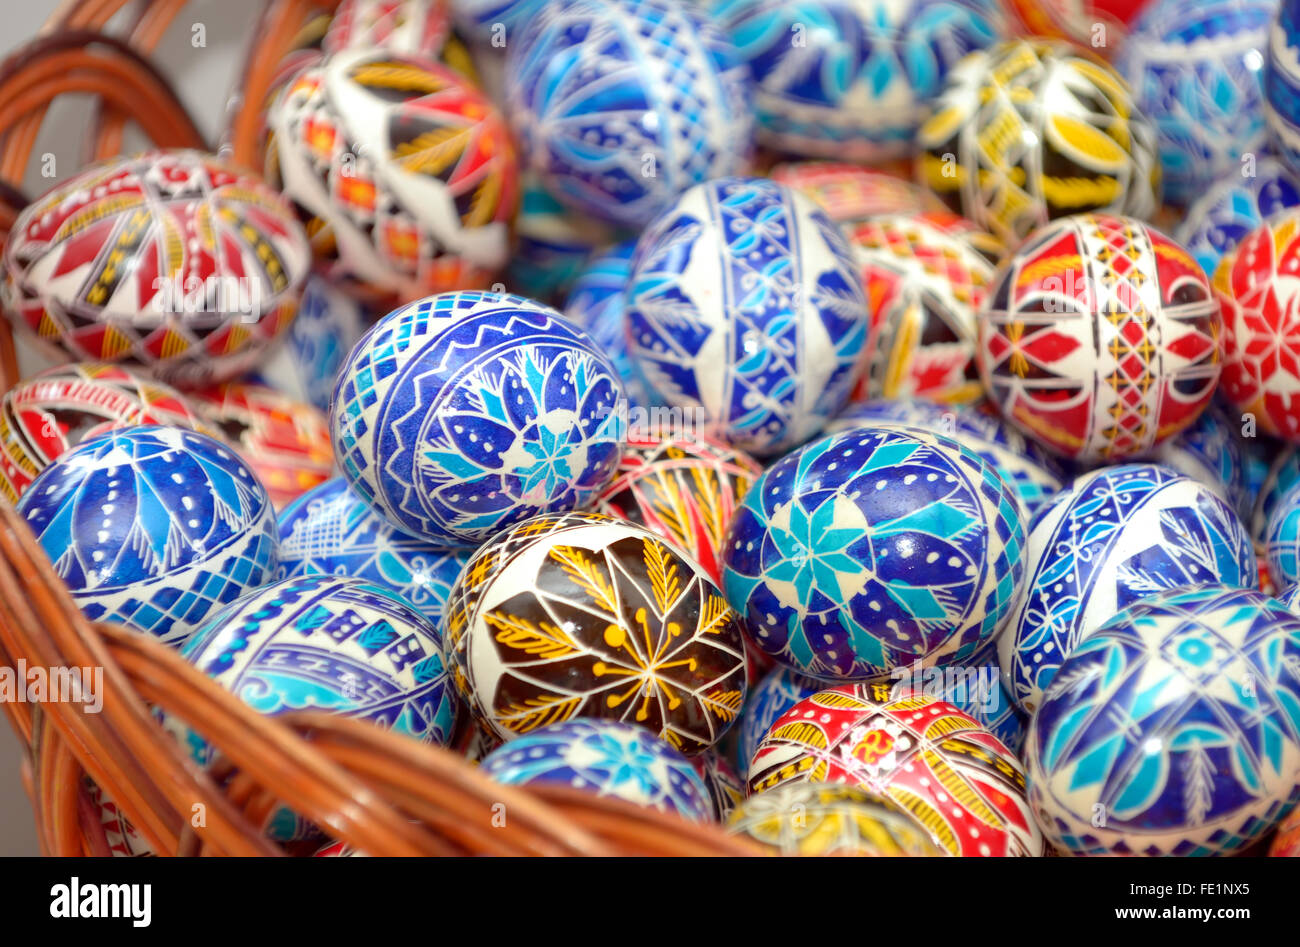 Des oeufs de pâques traditionnels peints à la main Photo Stock